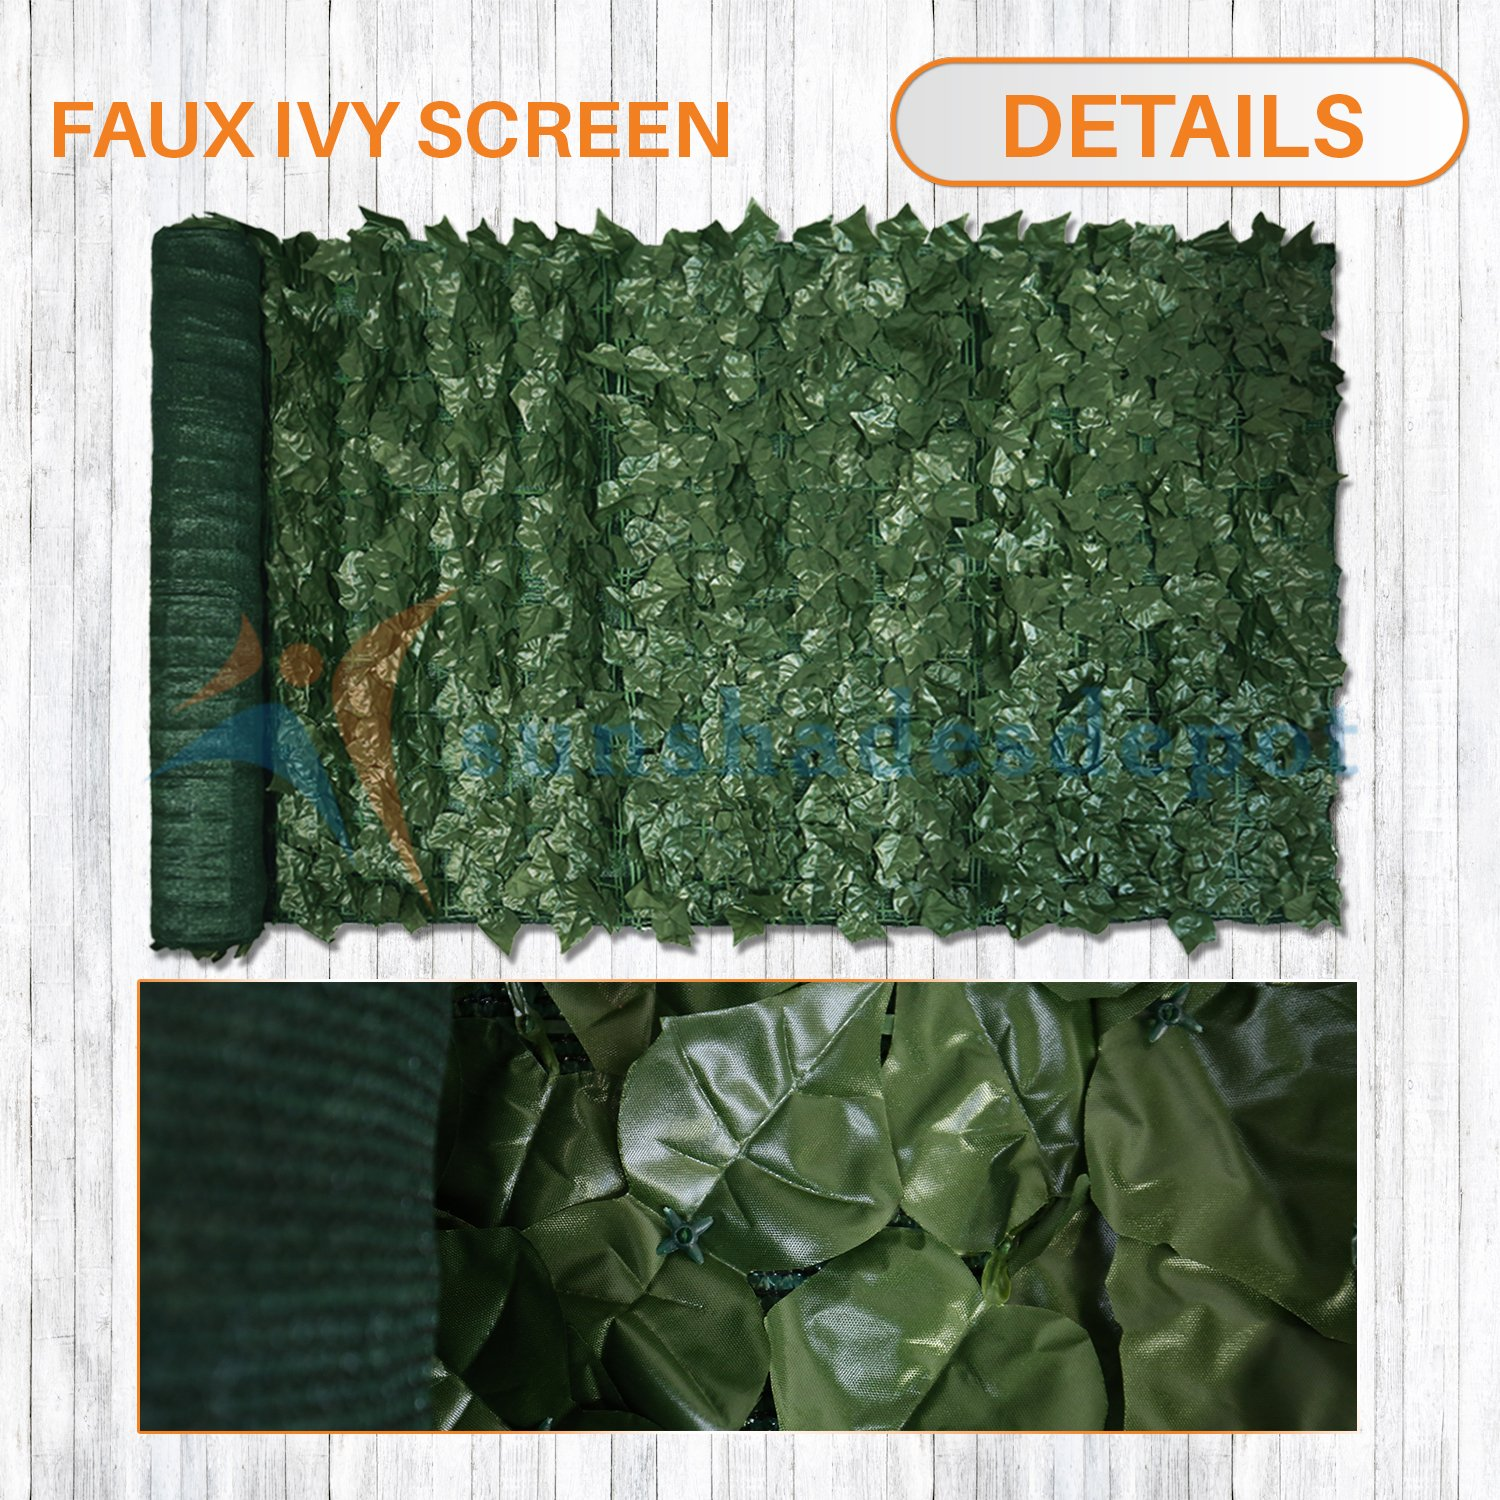 Sunshades Depot 4' x 14' Artificial Faux Ivy Privacy Fence Screen Leaf Vine Decoration Panel with Mesh Back by Sunshades Depot (Image #3)